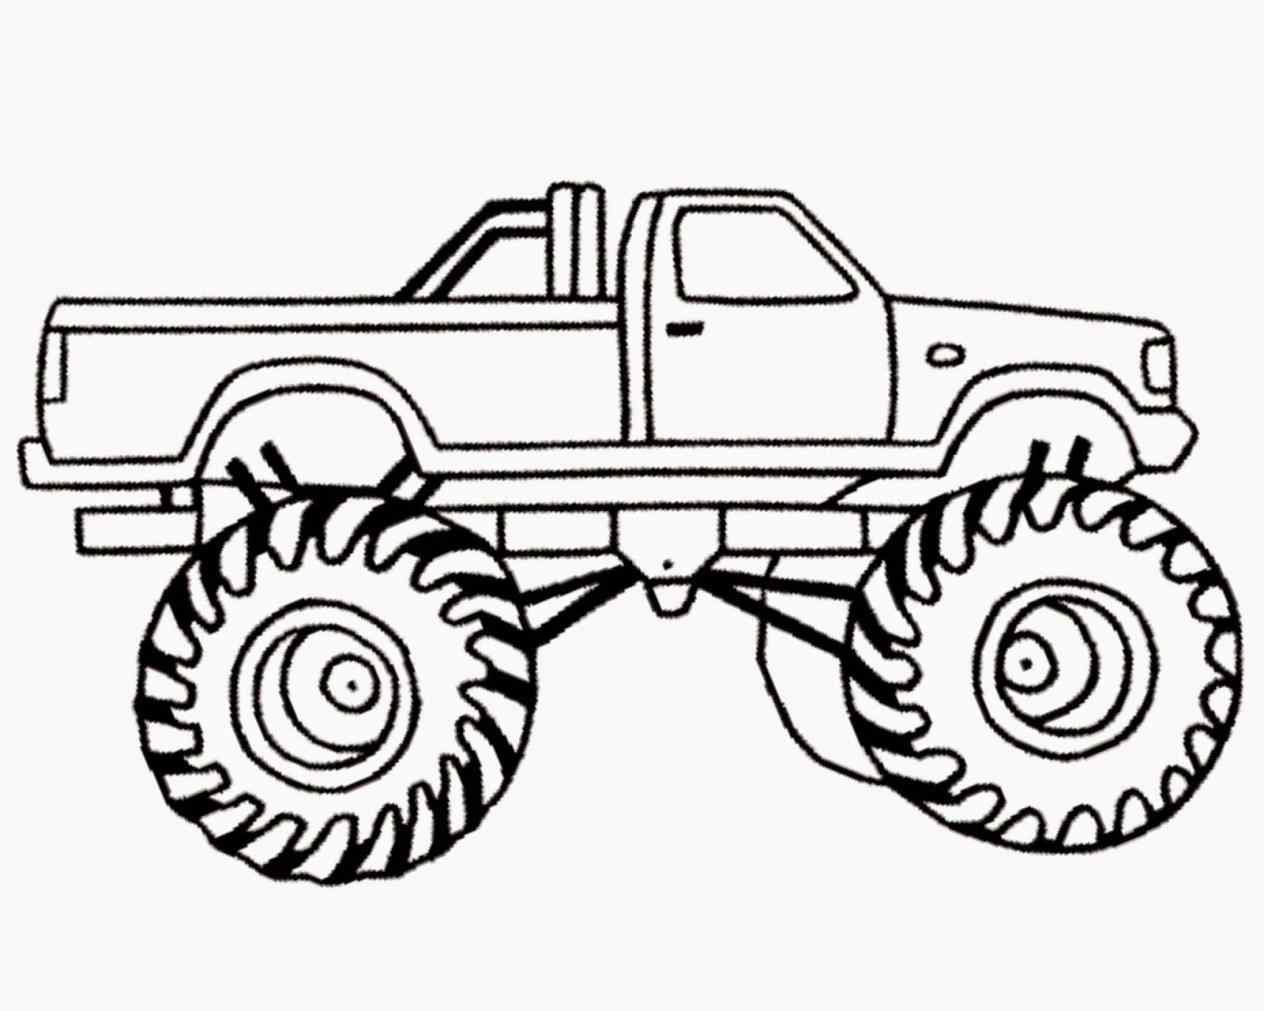 1264x1011 Easy Monster Truck Drawing Side View At Getscom Free For Personal